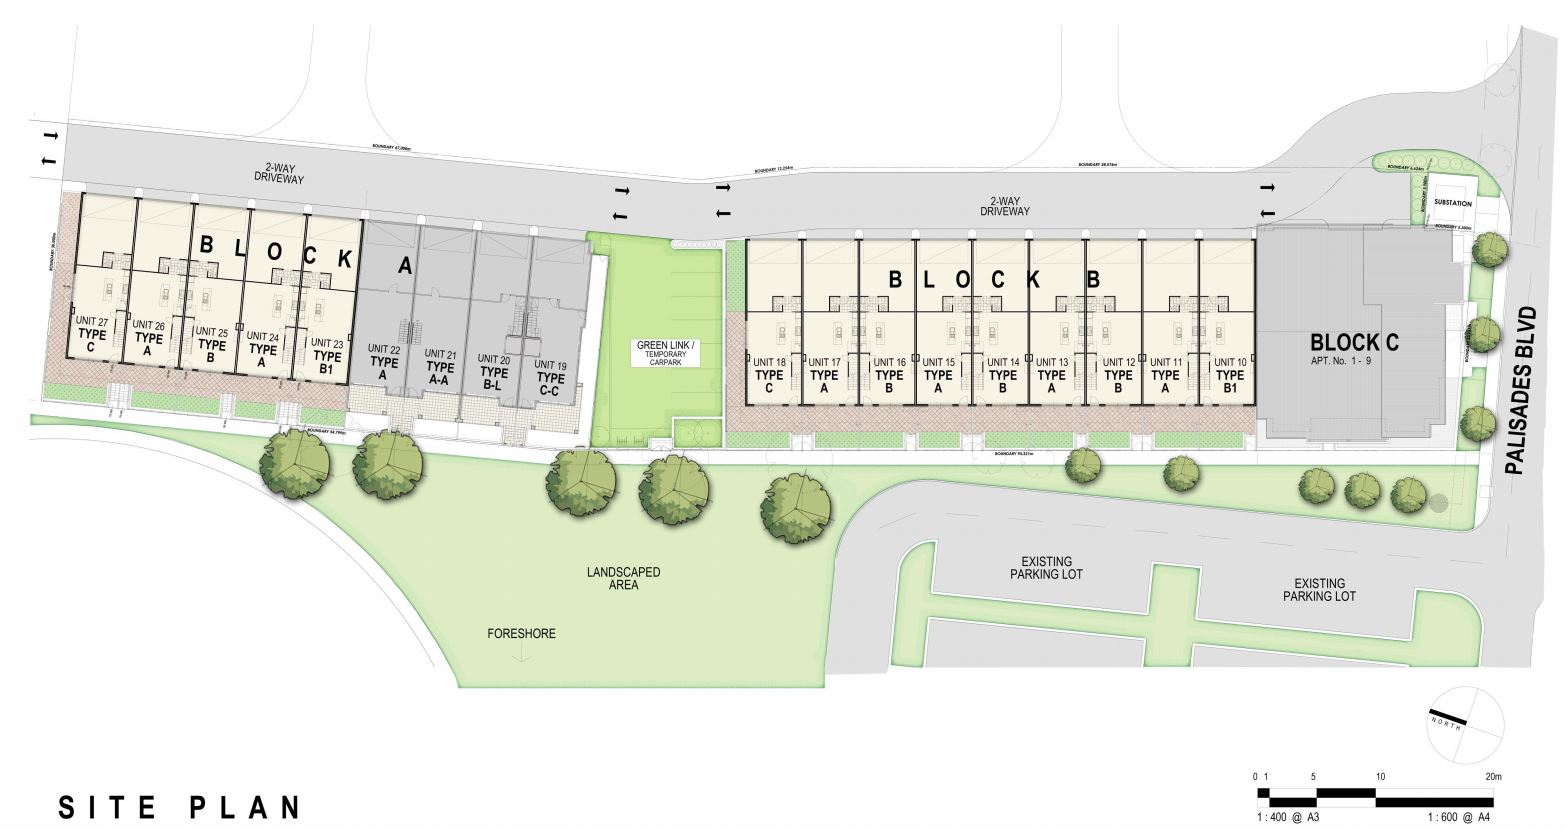 Lot 2662 Site Plan